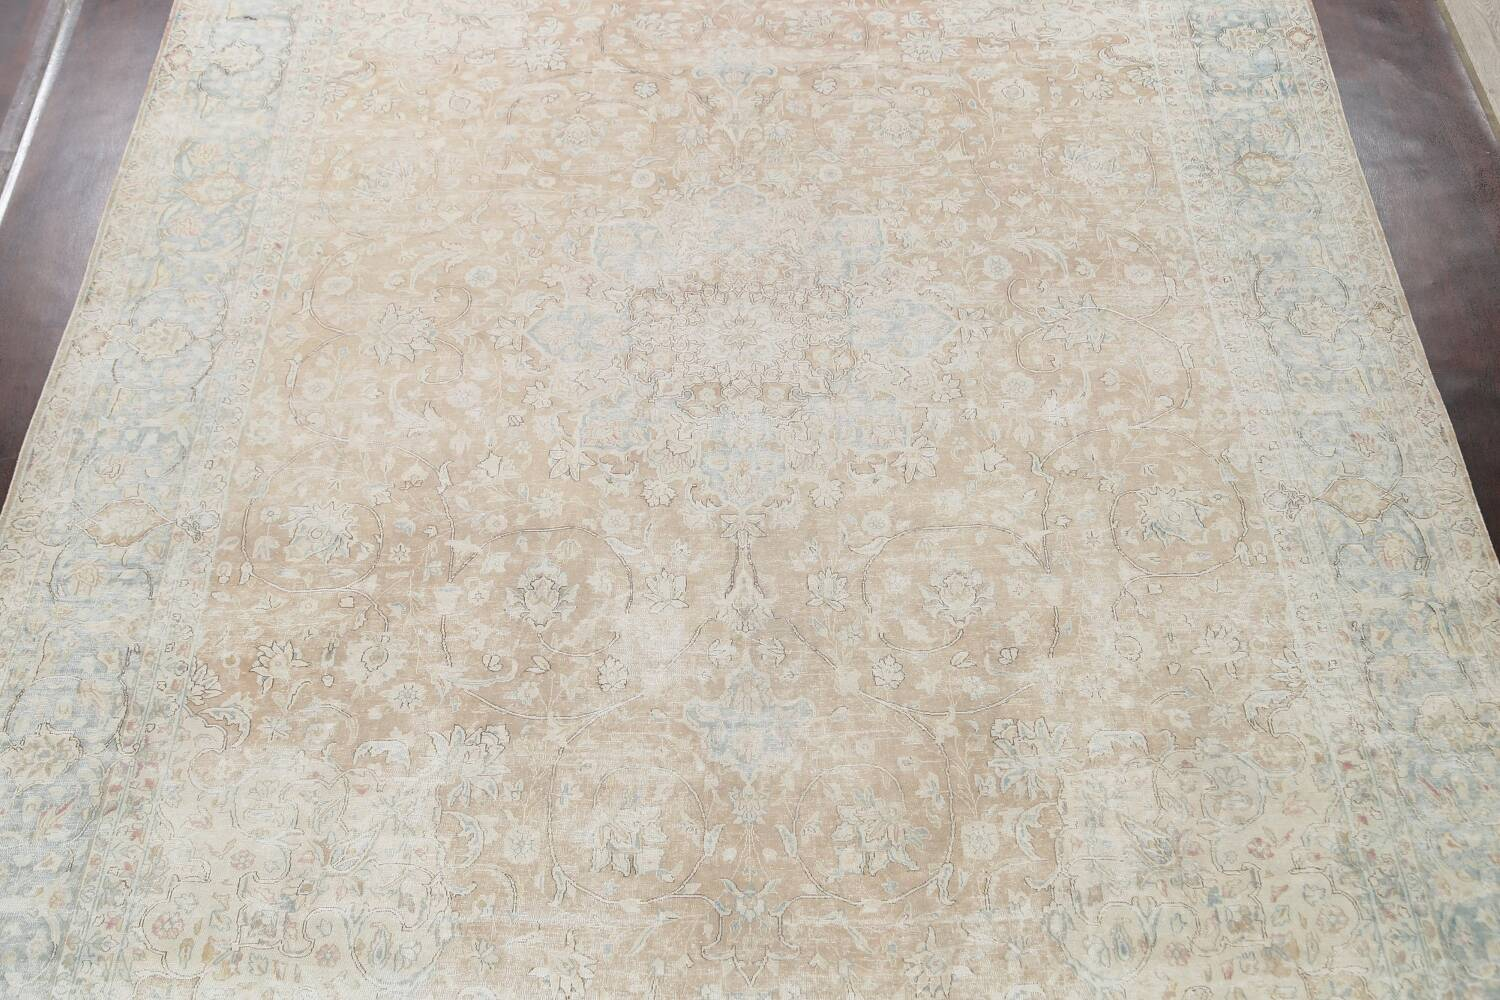 Muted Floral Kerman Persian Area Rug 10x13 image 3